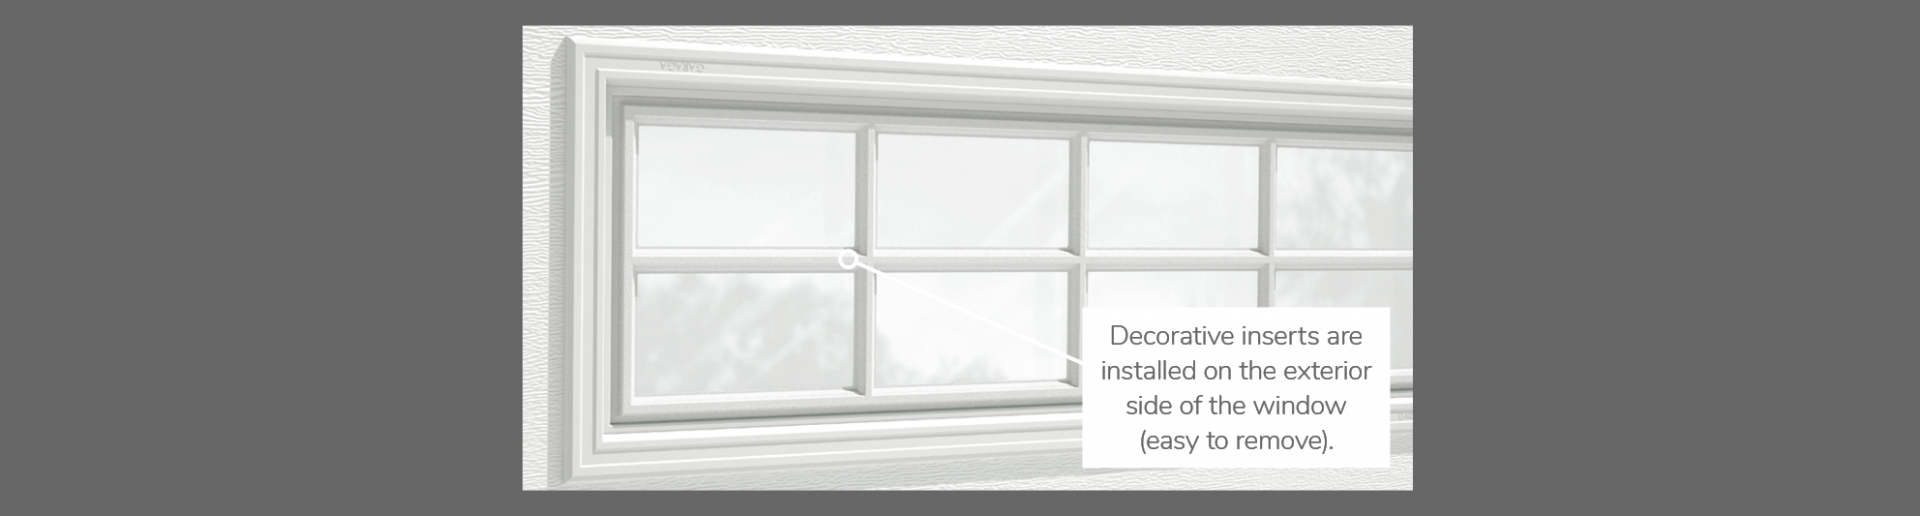 "Stockton Decorative Insert, 40"" x 13"", 21"" x 13"", 41"" x 16"" or 20"" x 13"", available for door R-16, R-12, 3 layers - Polystyrene, 2 layers - Polystyrene and Non-insulated"